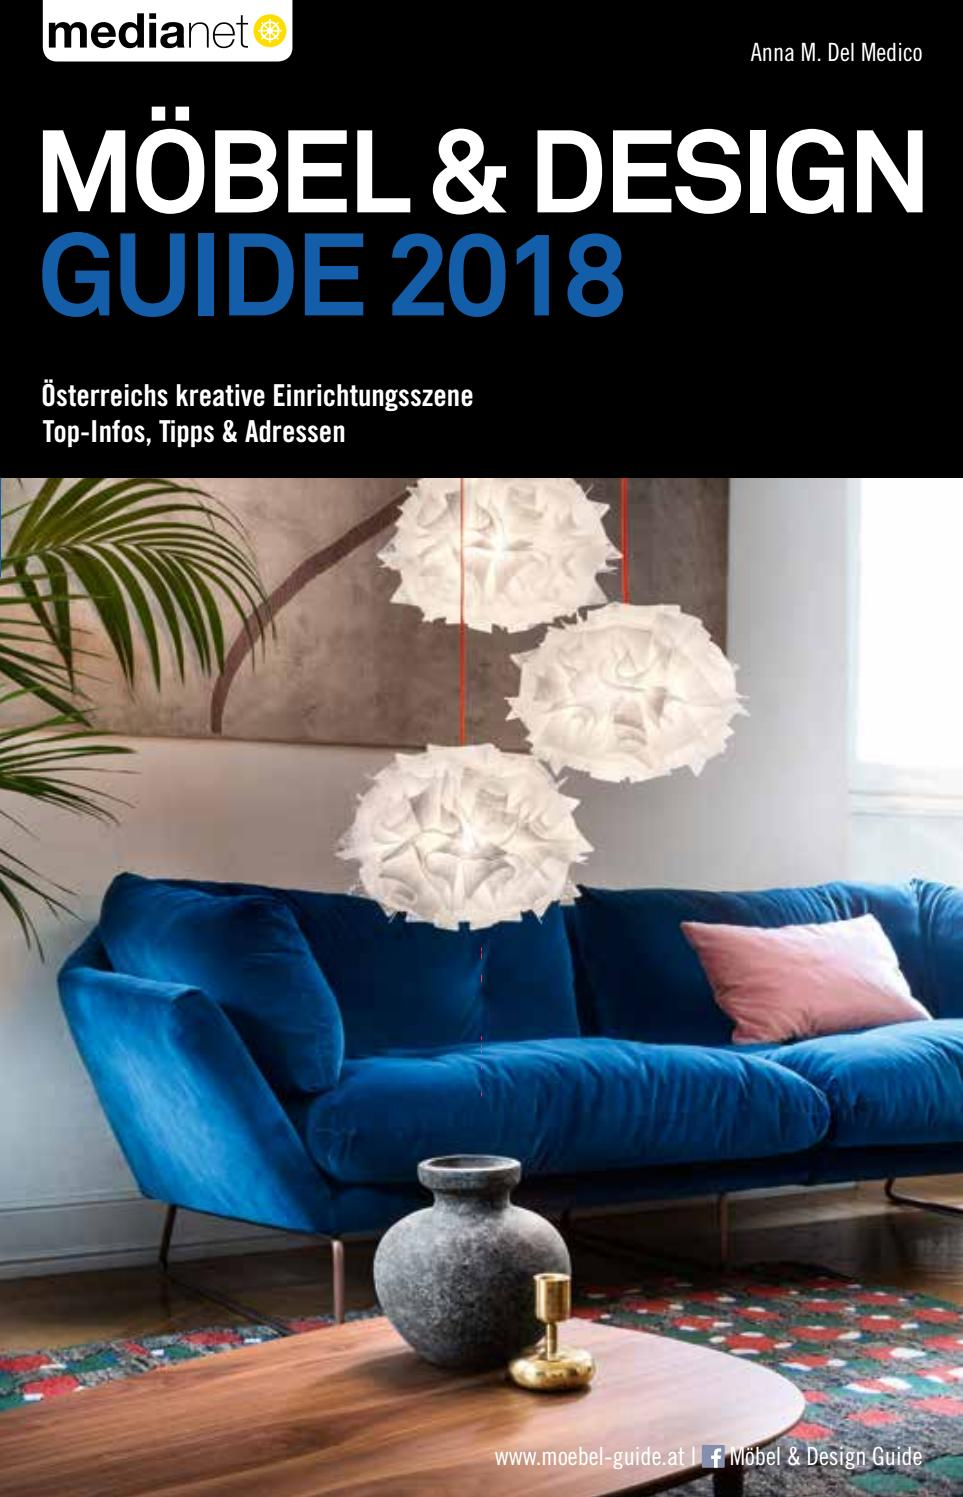 Sessel Im Schuhdesign Möbel Design Guide 2018